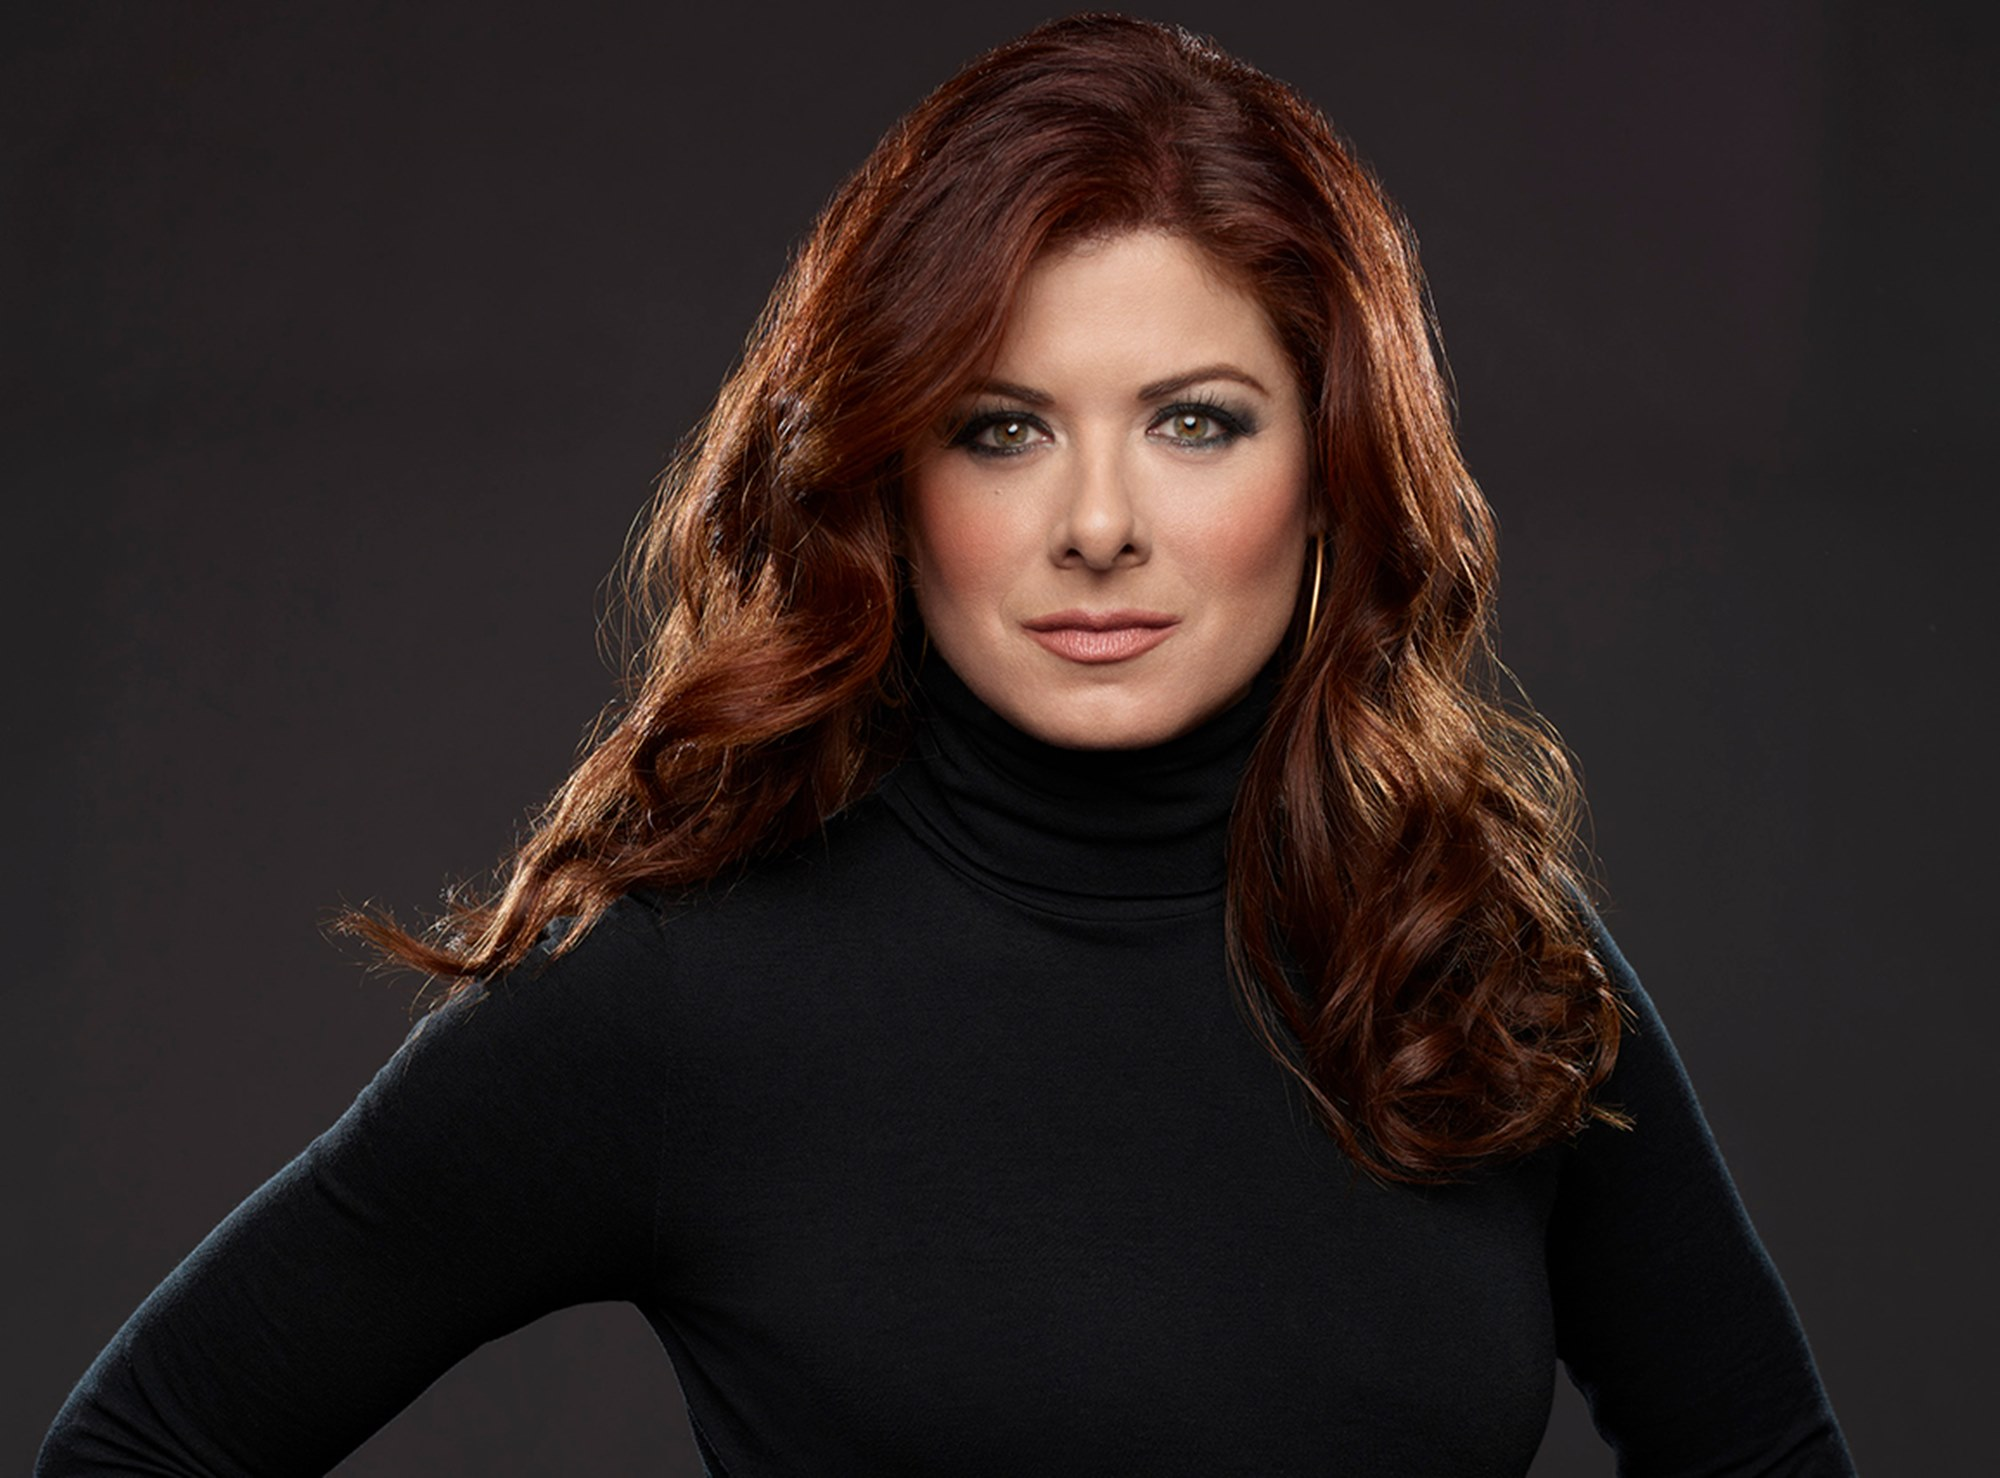 debra-messing-opens-up-about-being-pushed-to-go-from-a-size-8-to-a-size-2-and-why-she-hated-herself-for-doing-it